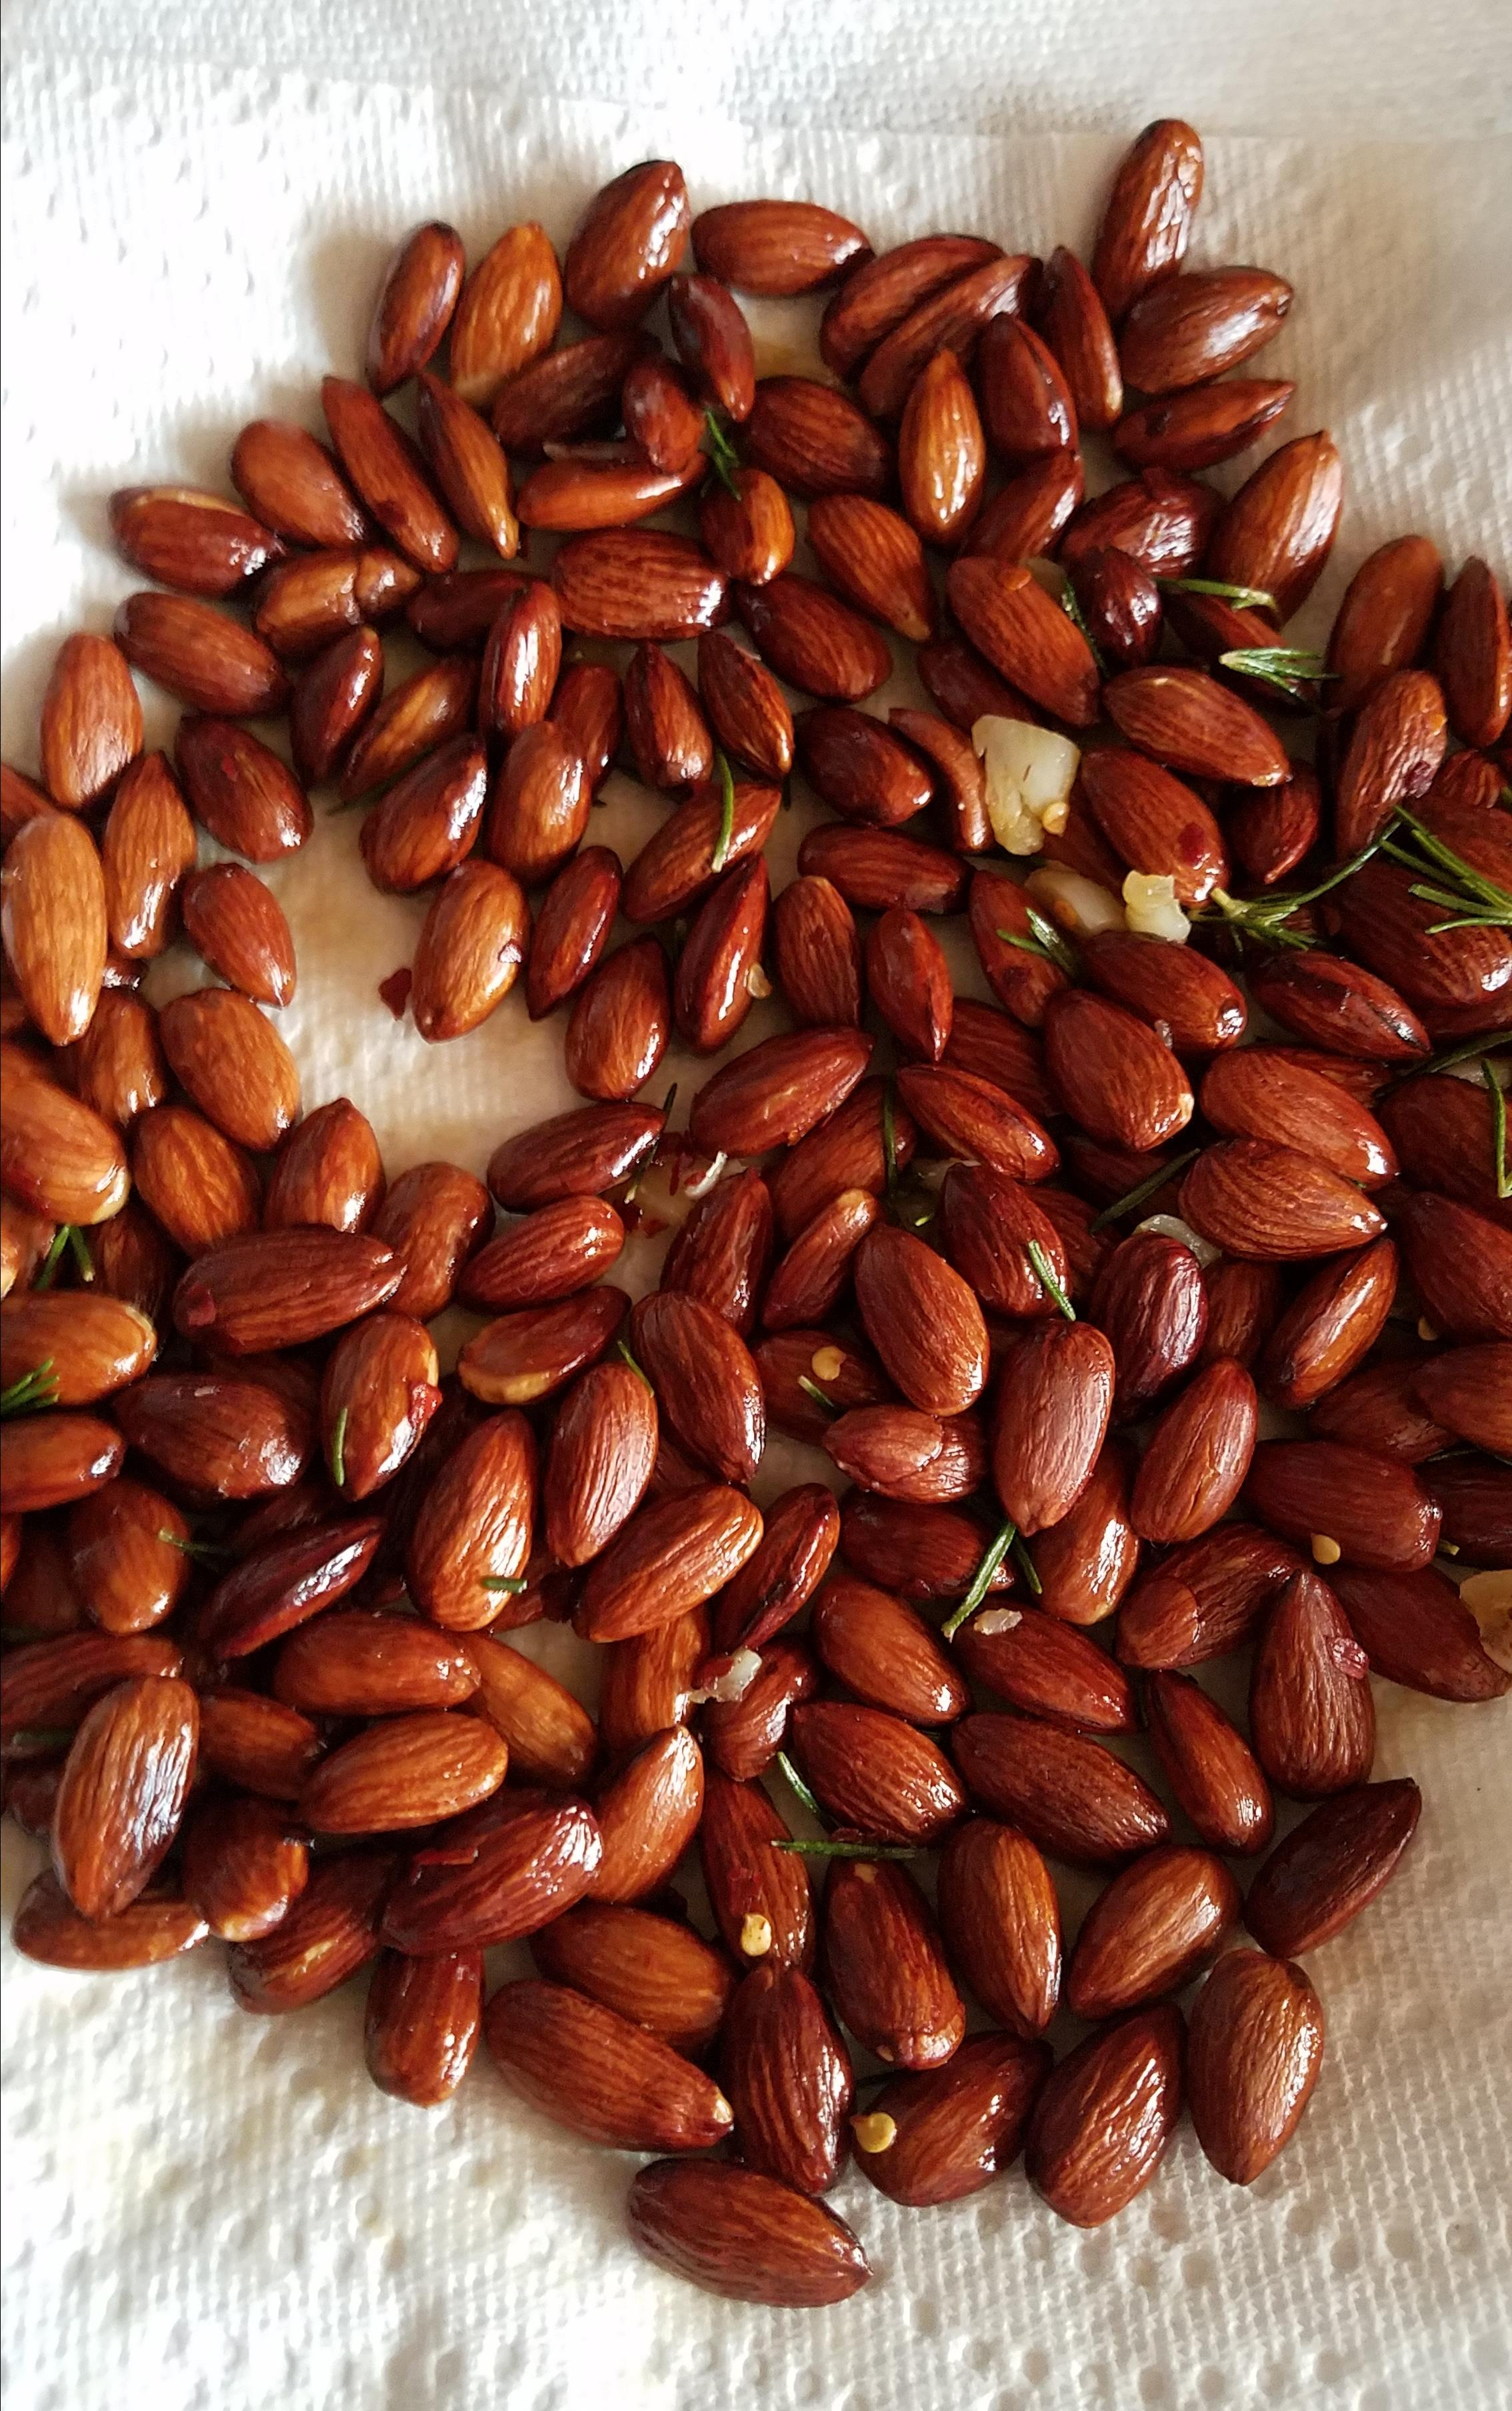 Rosemary and Garlic Infused Oven Roasted Almonds